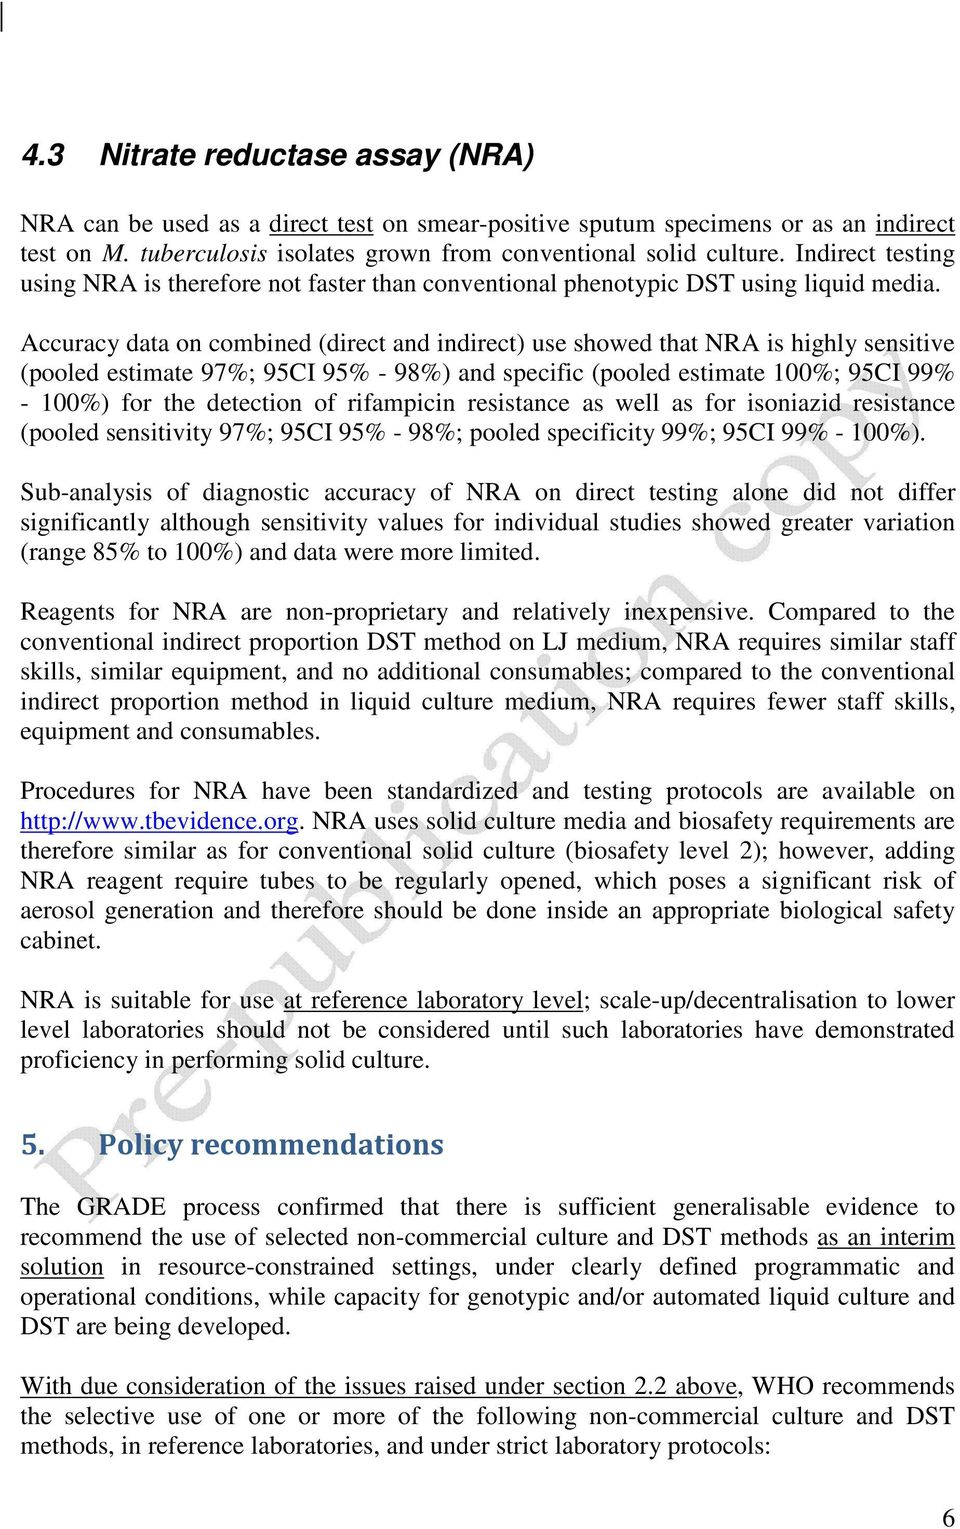 Accuracy data on combined (direct and indirect) use showed that NRA is highly sensitive (pooled estimate 97%; 95CI 95% - 98%) and specific (pooled estimate 100%; 95CI 99% - 100%) for the detection of